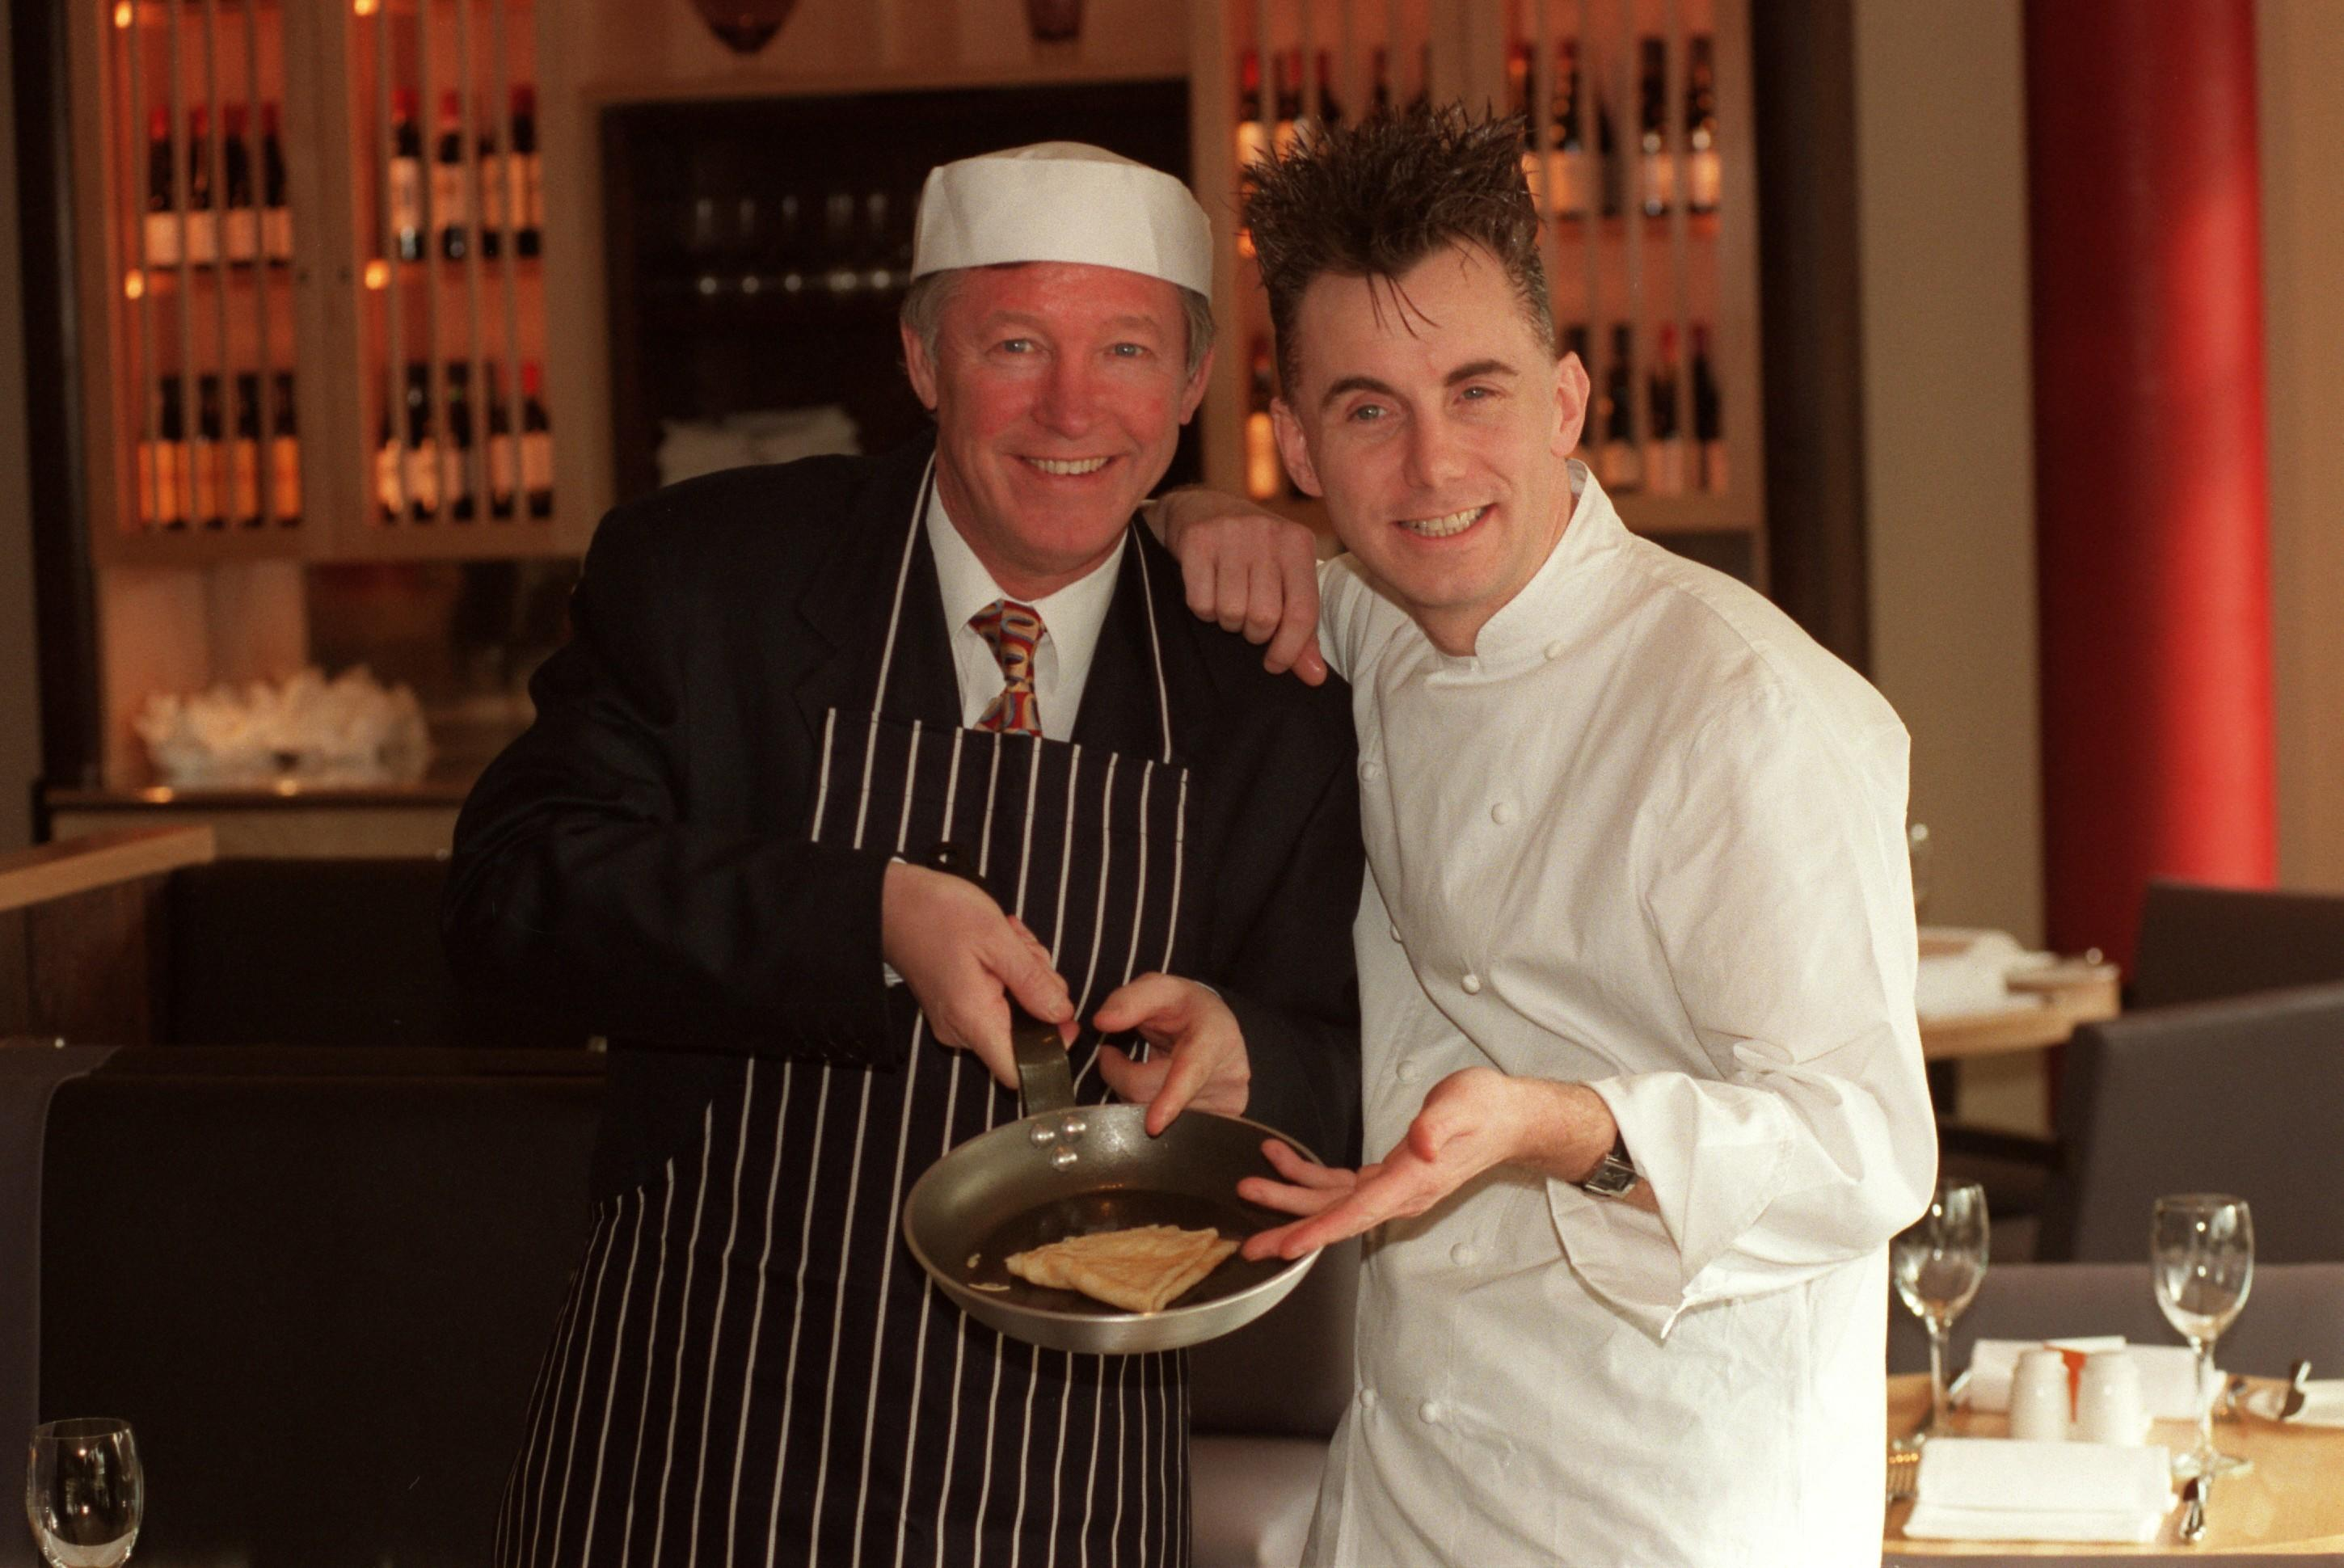 Manchester United manager Alex Ferguson (left) and chef Gary Rhodes (right) at the opening of the Manchester United restaurant